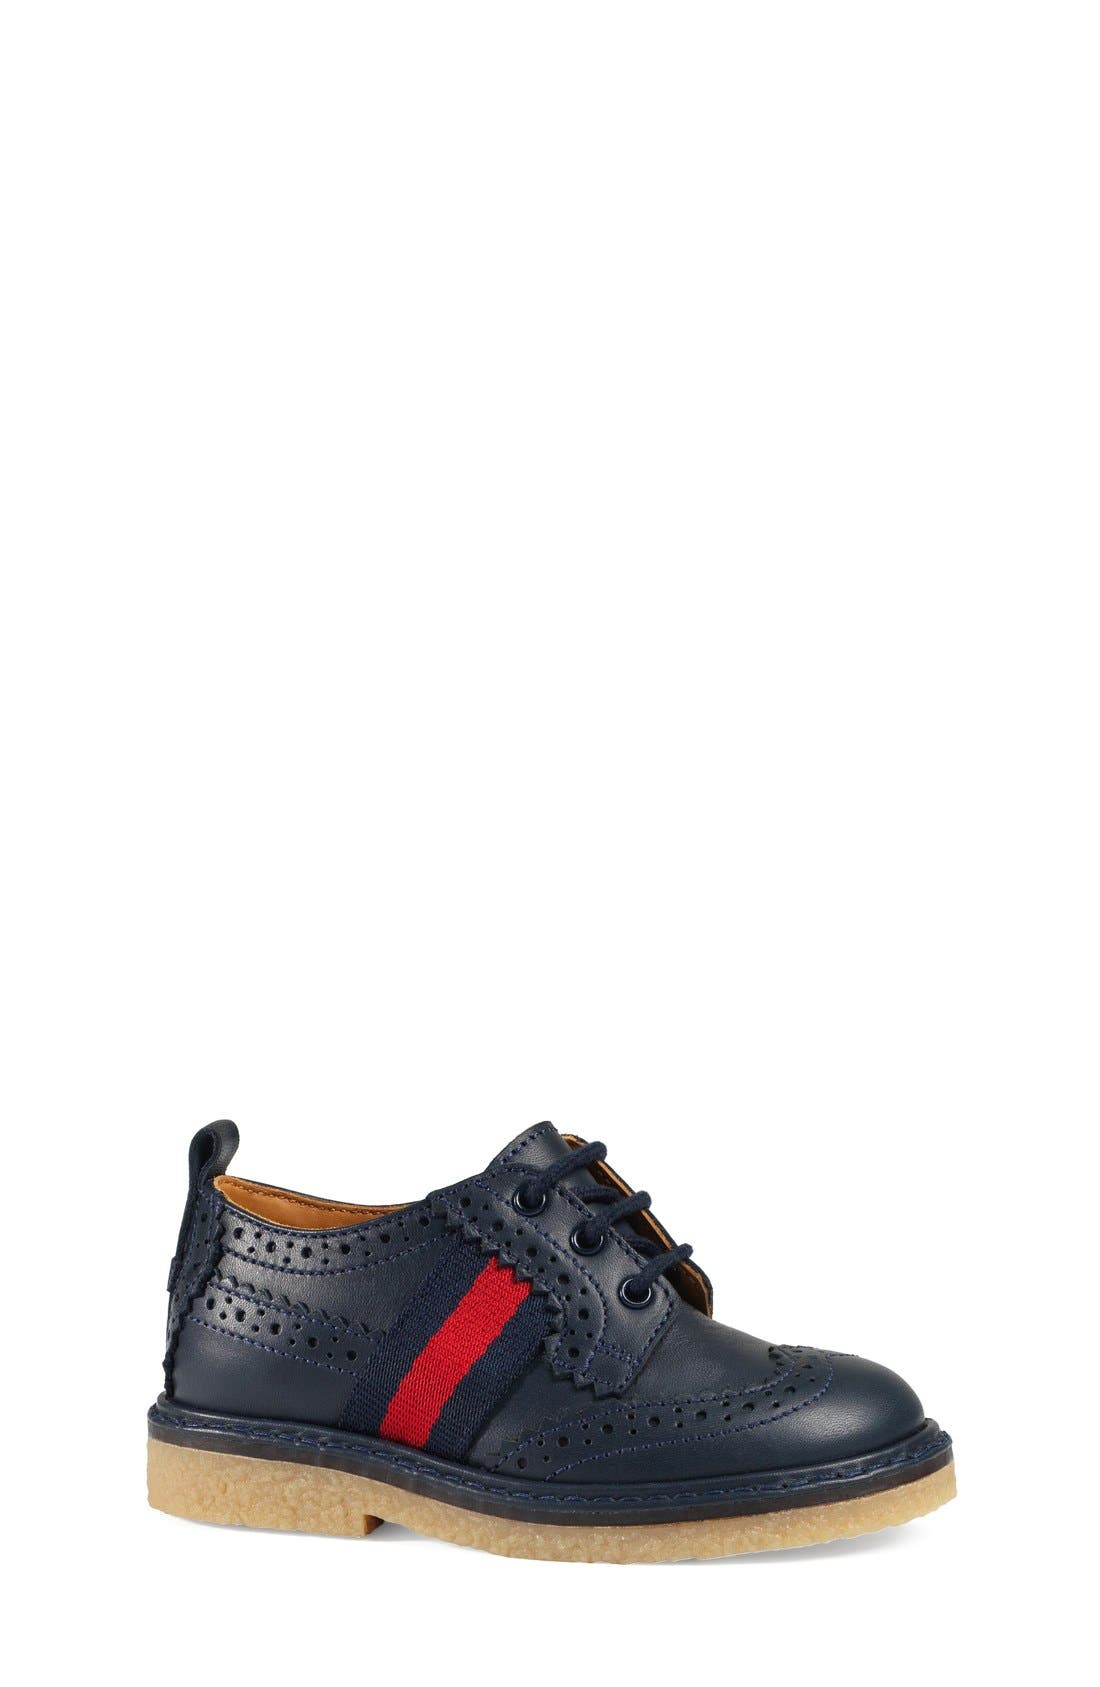 Alternate Image 1 Selected - Gucci 'Darby' Oxford (Baby, Walker, Toddler & Little Kid)